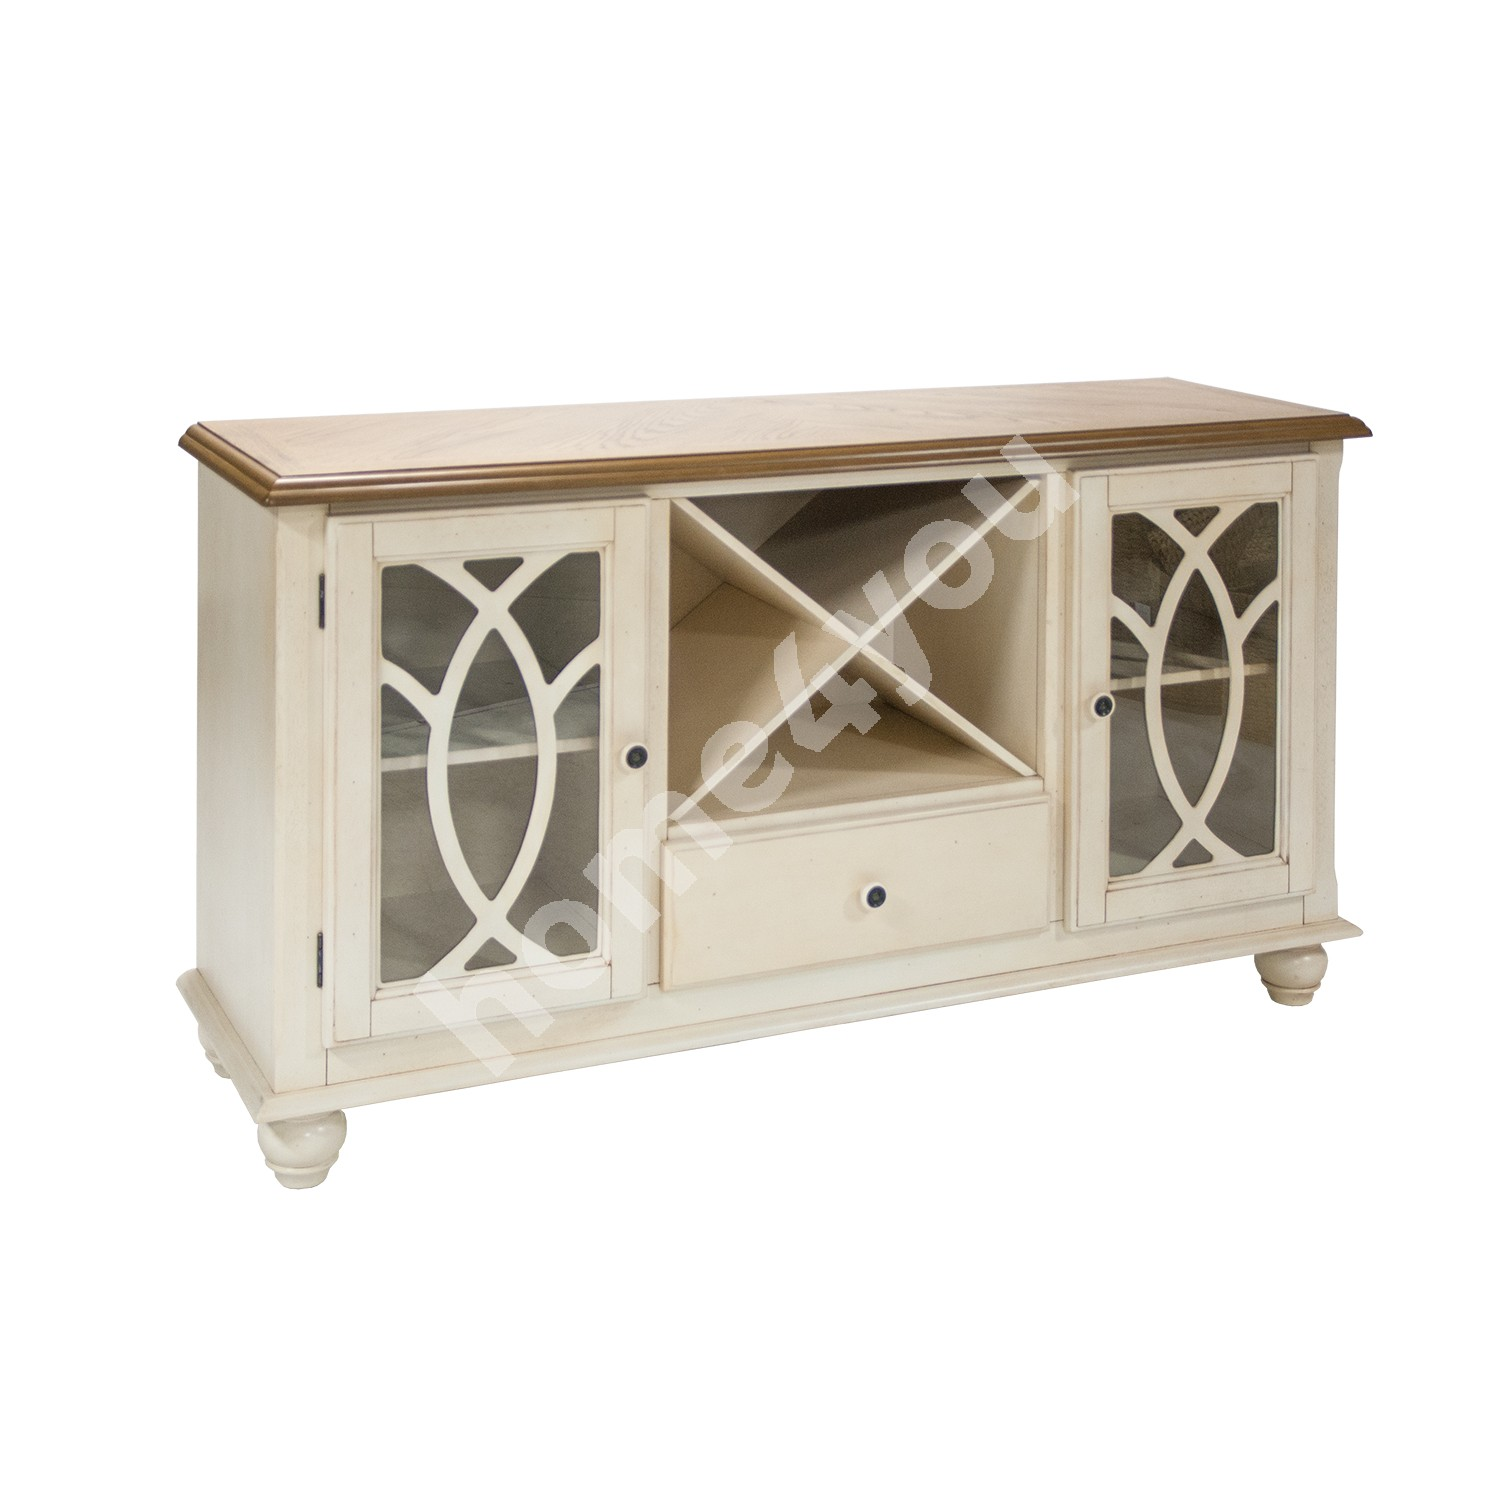 Sideboard LILY 152x46xH84cm, material: oak veneer on MDF, frame: rubber wood, color: oak / antique white